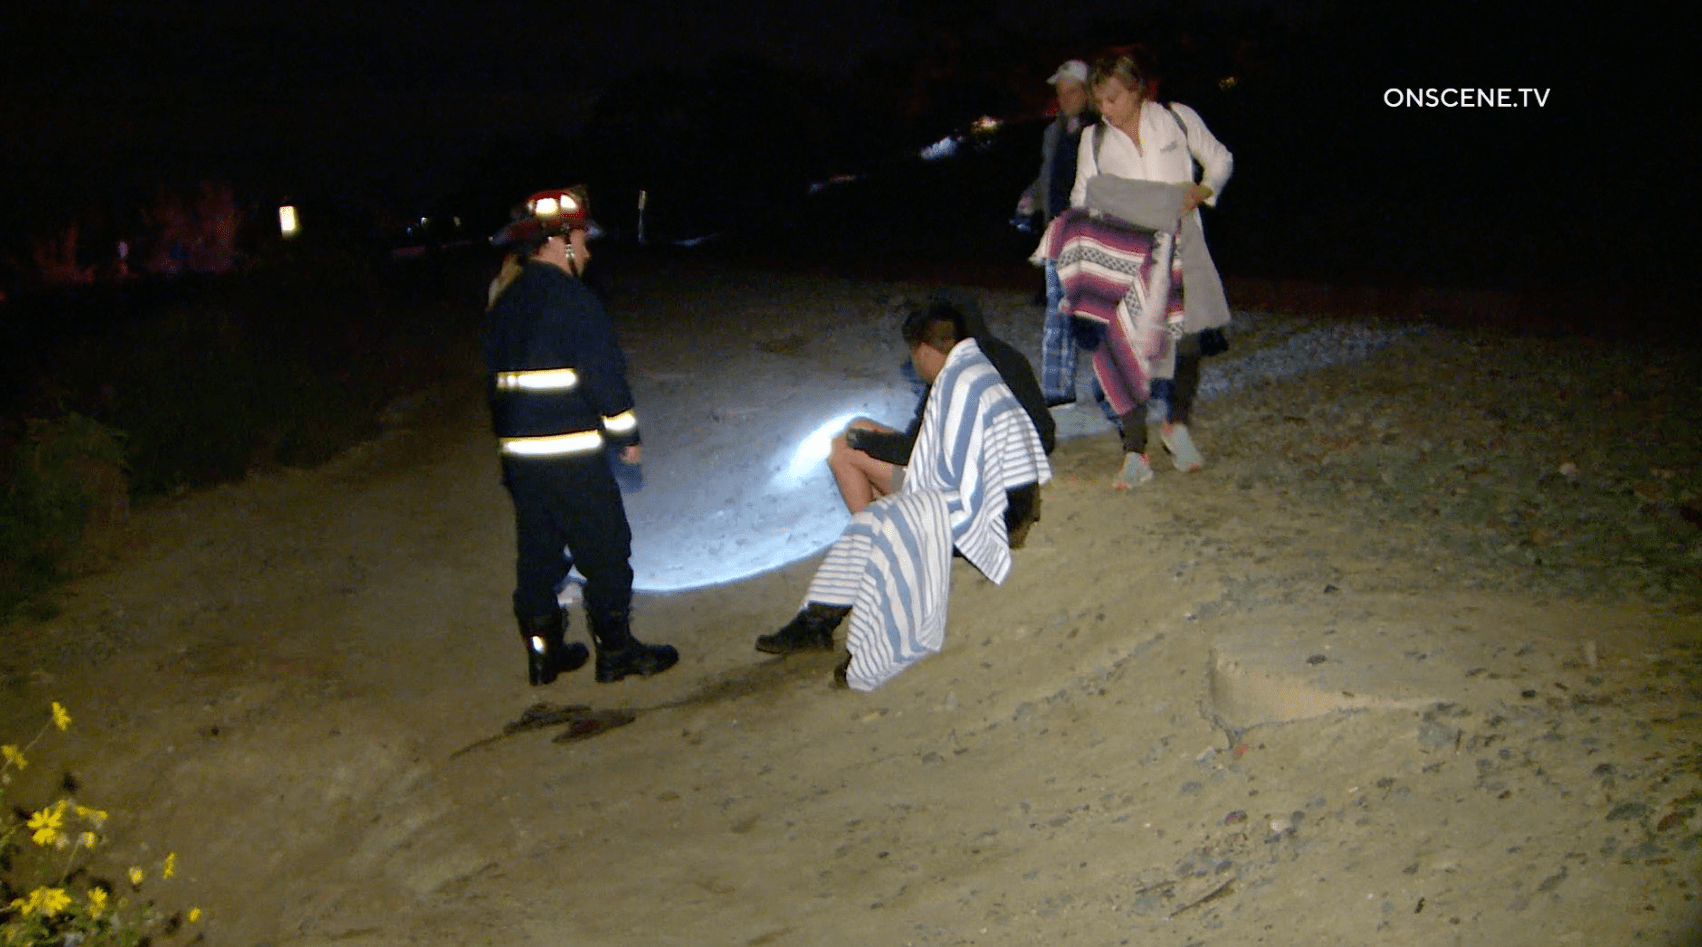 Firefighters speak with people rescued after apparently being dumped from a panga boat off Del Mar on Feb. 28, 2020.(Credit: Onscene.TV)